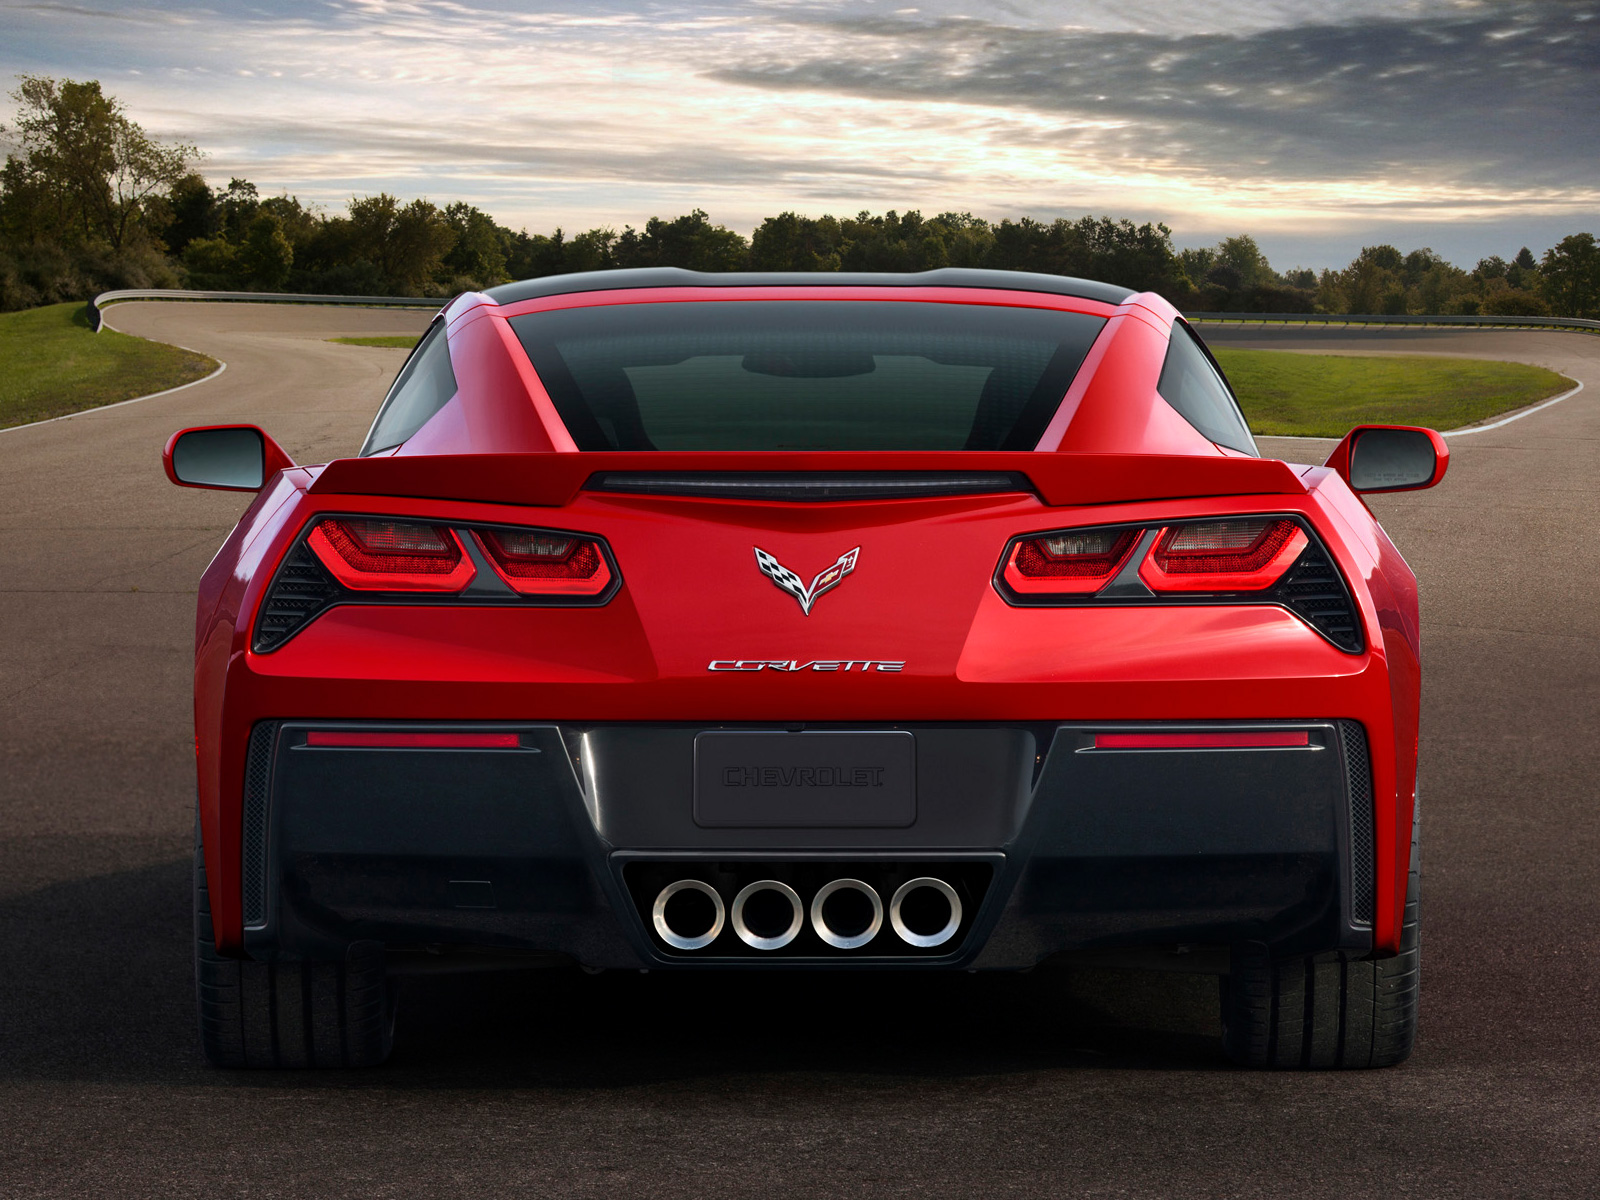 2014 Chevrolet Corvette Stingray Rear